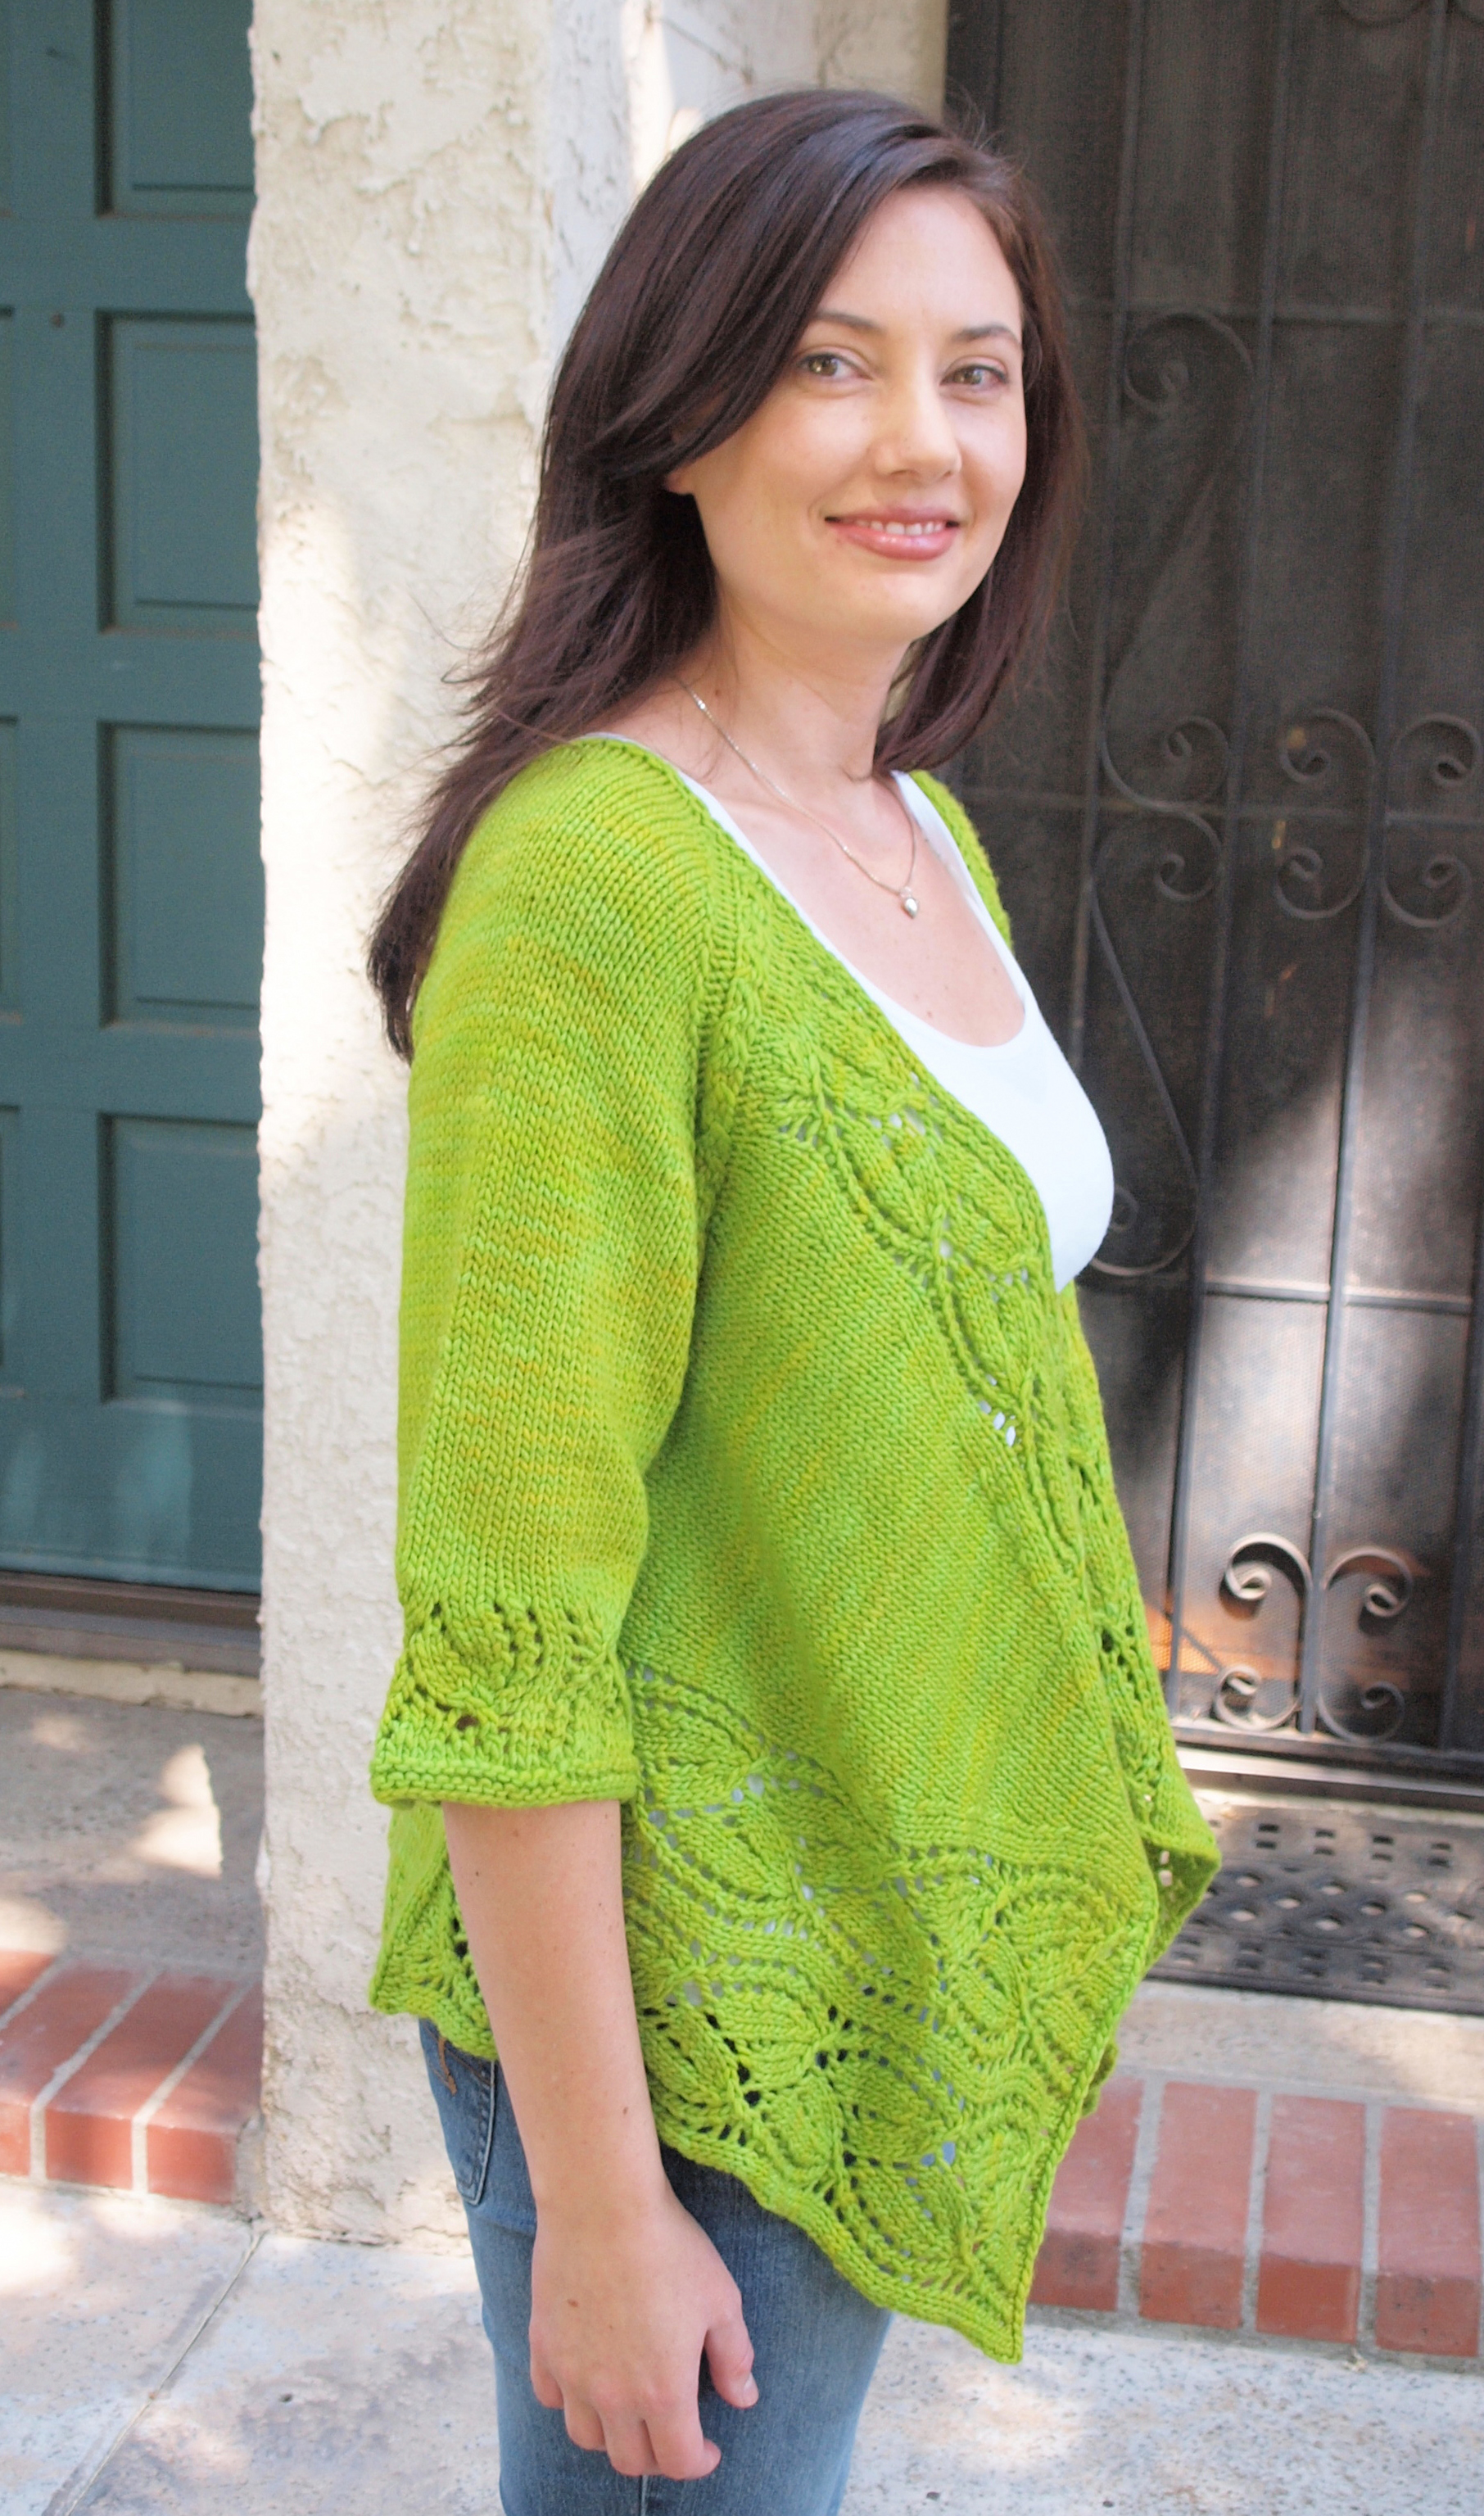 Dramatic Lace Wrap in Stunning Green! - Knitting Patterns Blog from ...